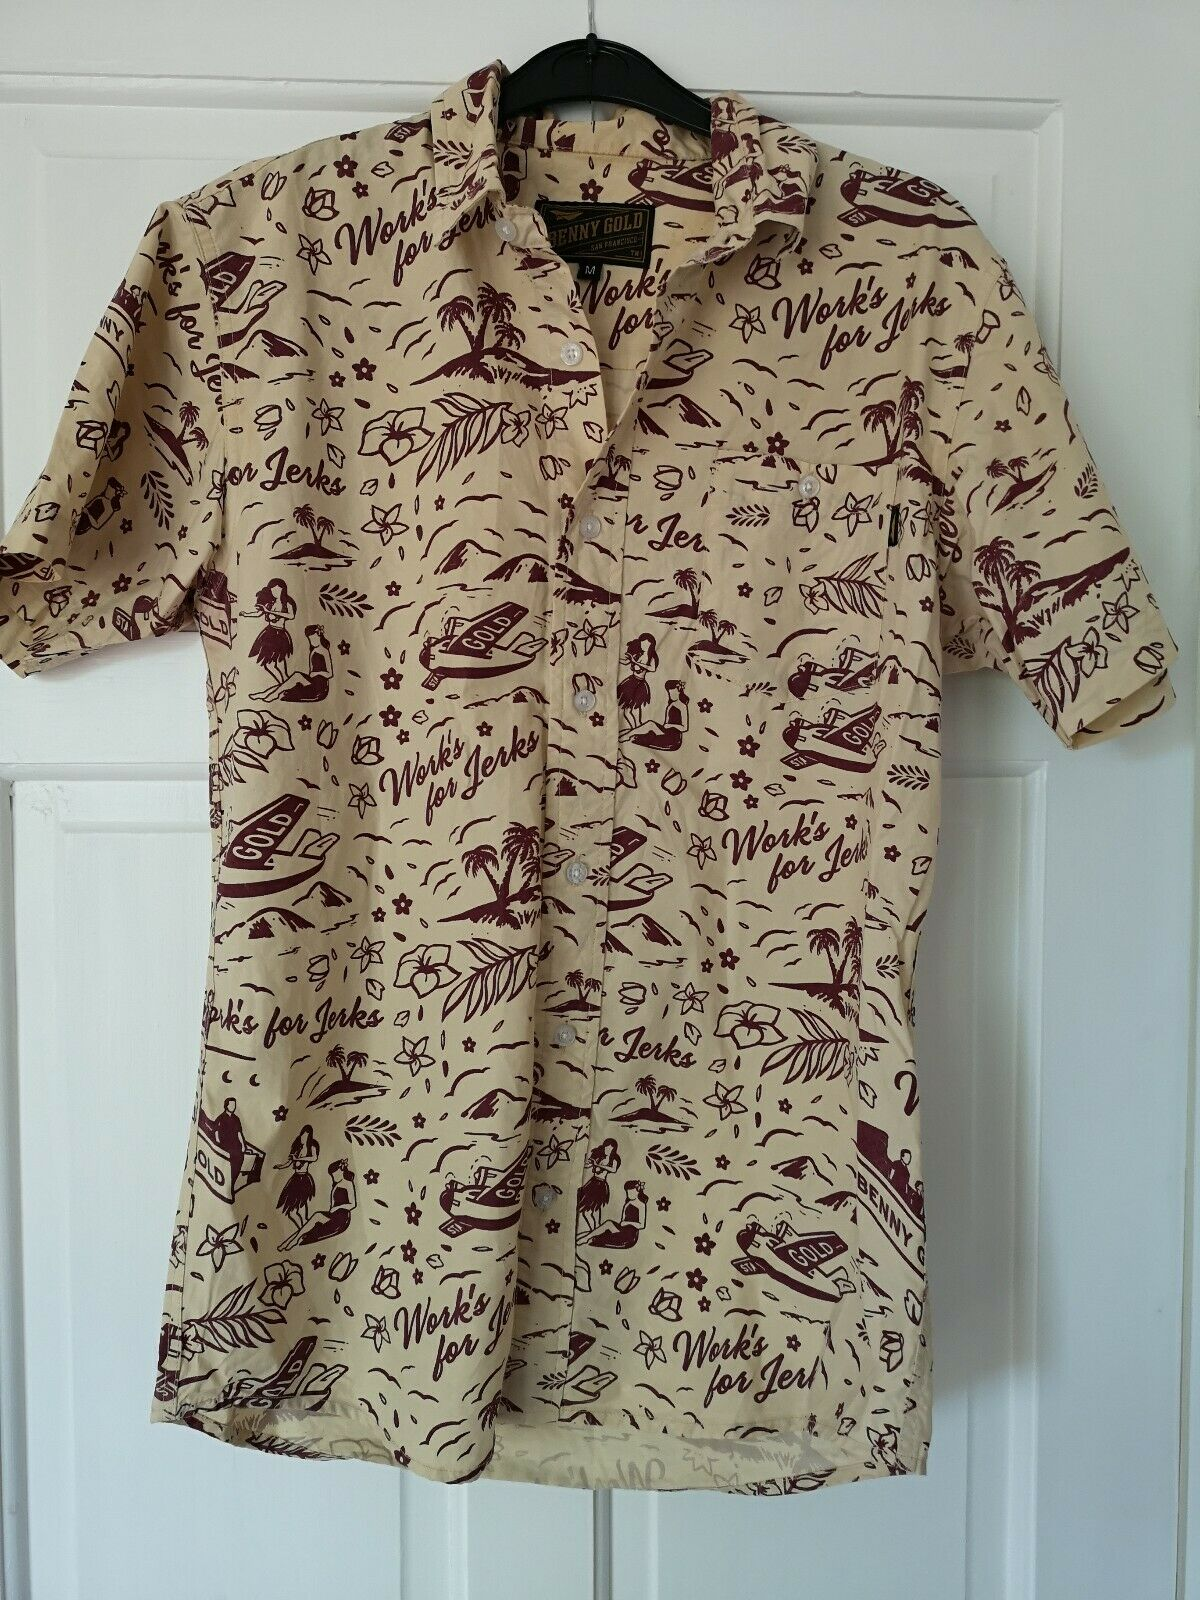 Button Up Benny gold Hawaiian Luau T Shirt work's for jerks mens